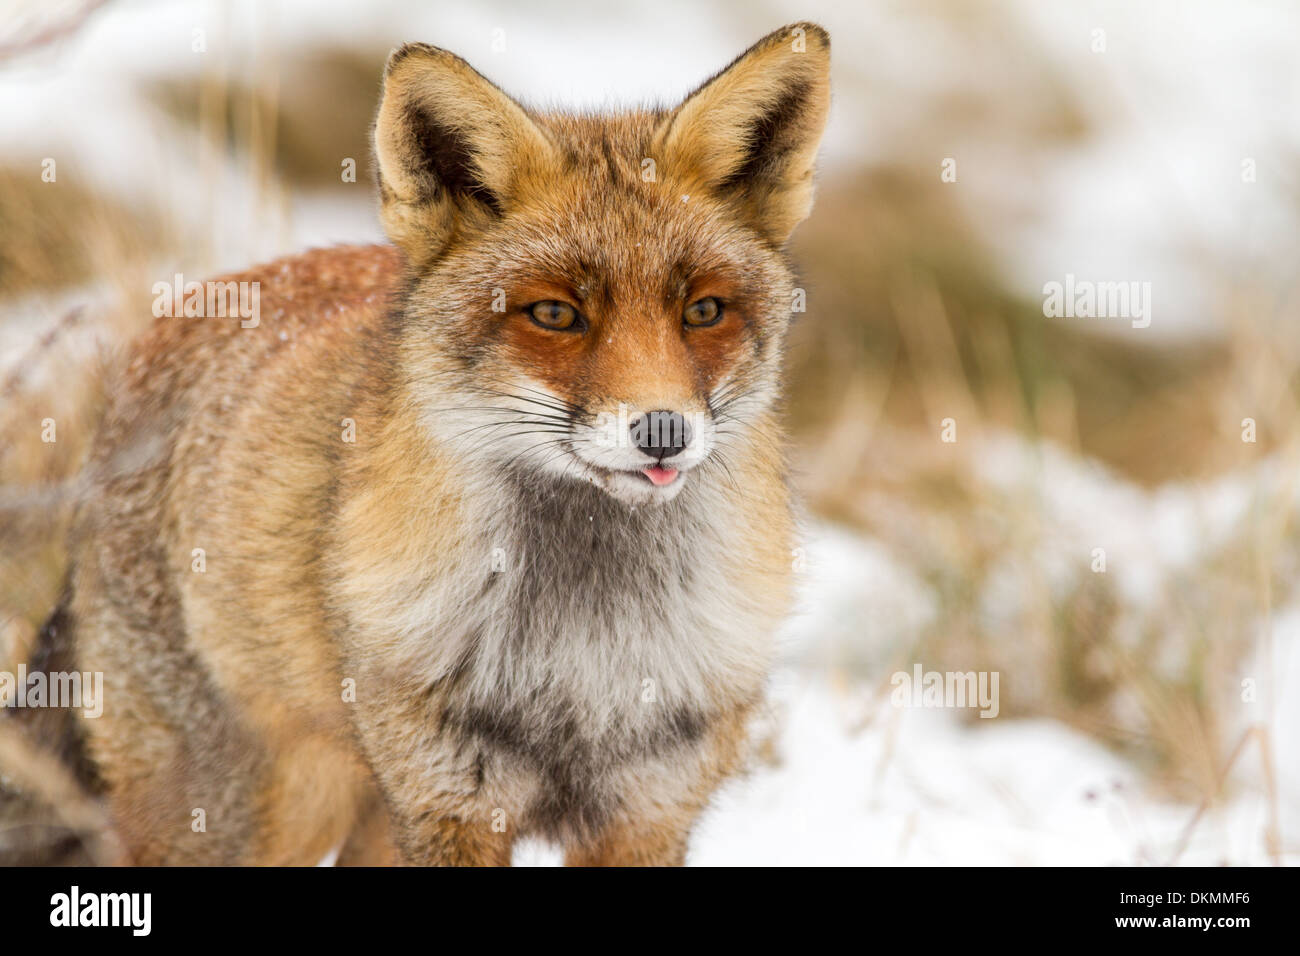 Fox is a common name for many species of alert omnivorous